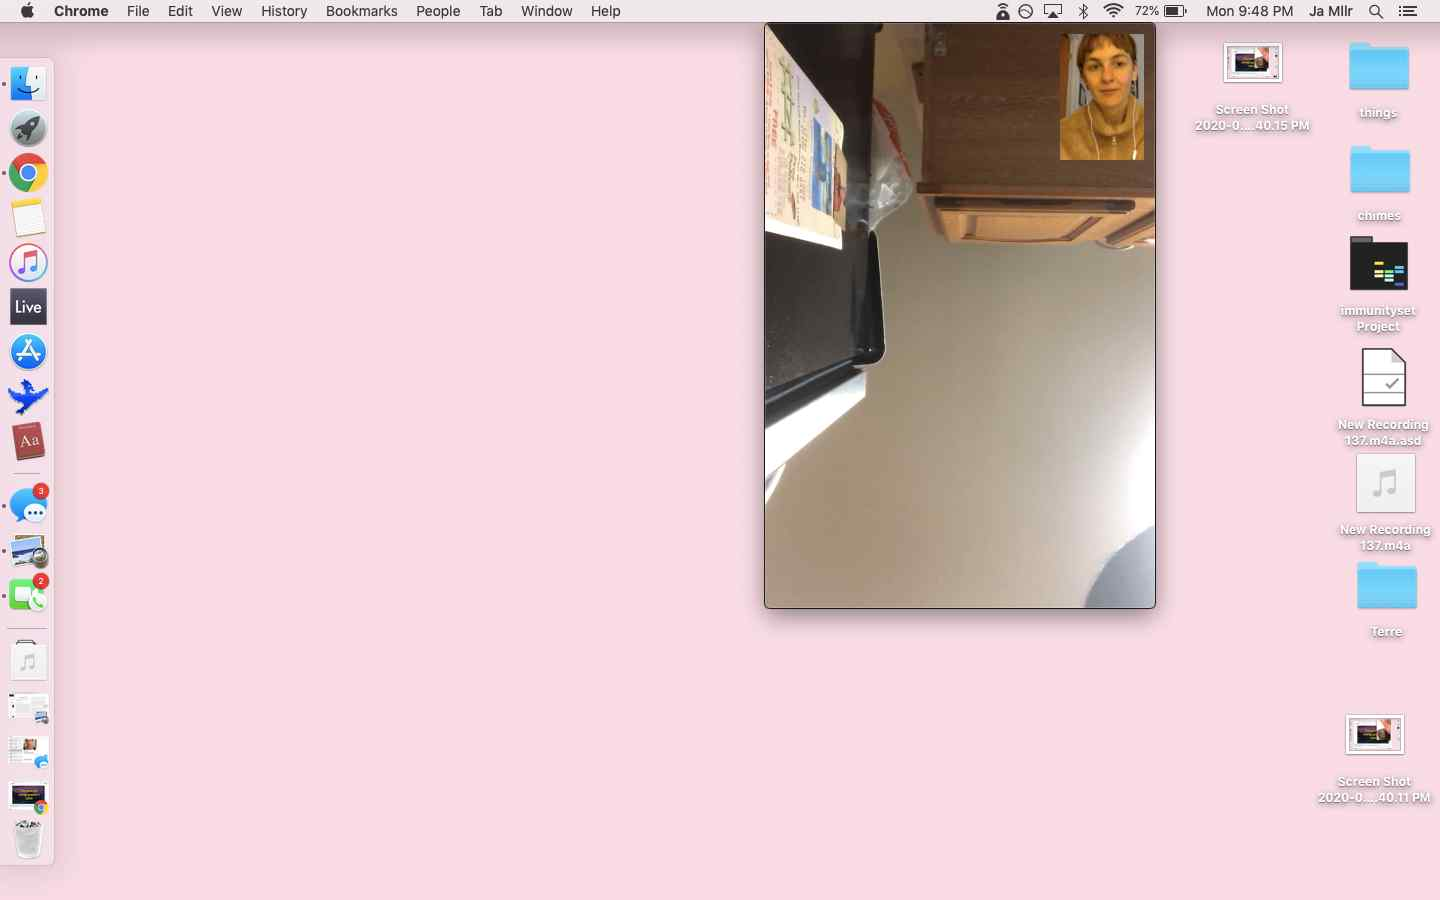 Mac screenshot of FaceTime conversation with A, on A's side the screen shows her kitchen ceiling